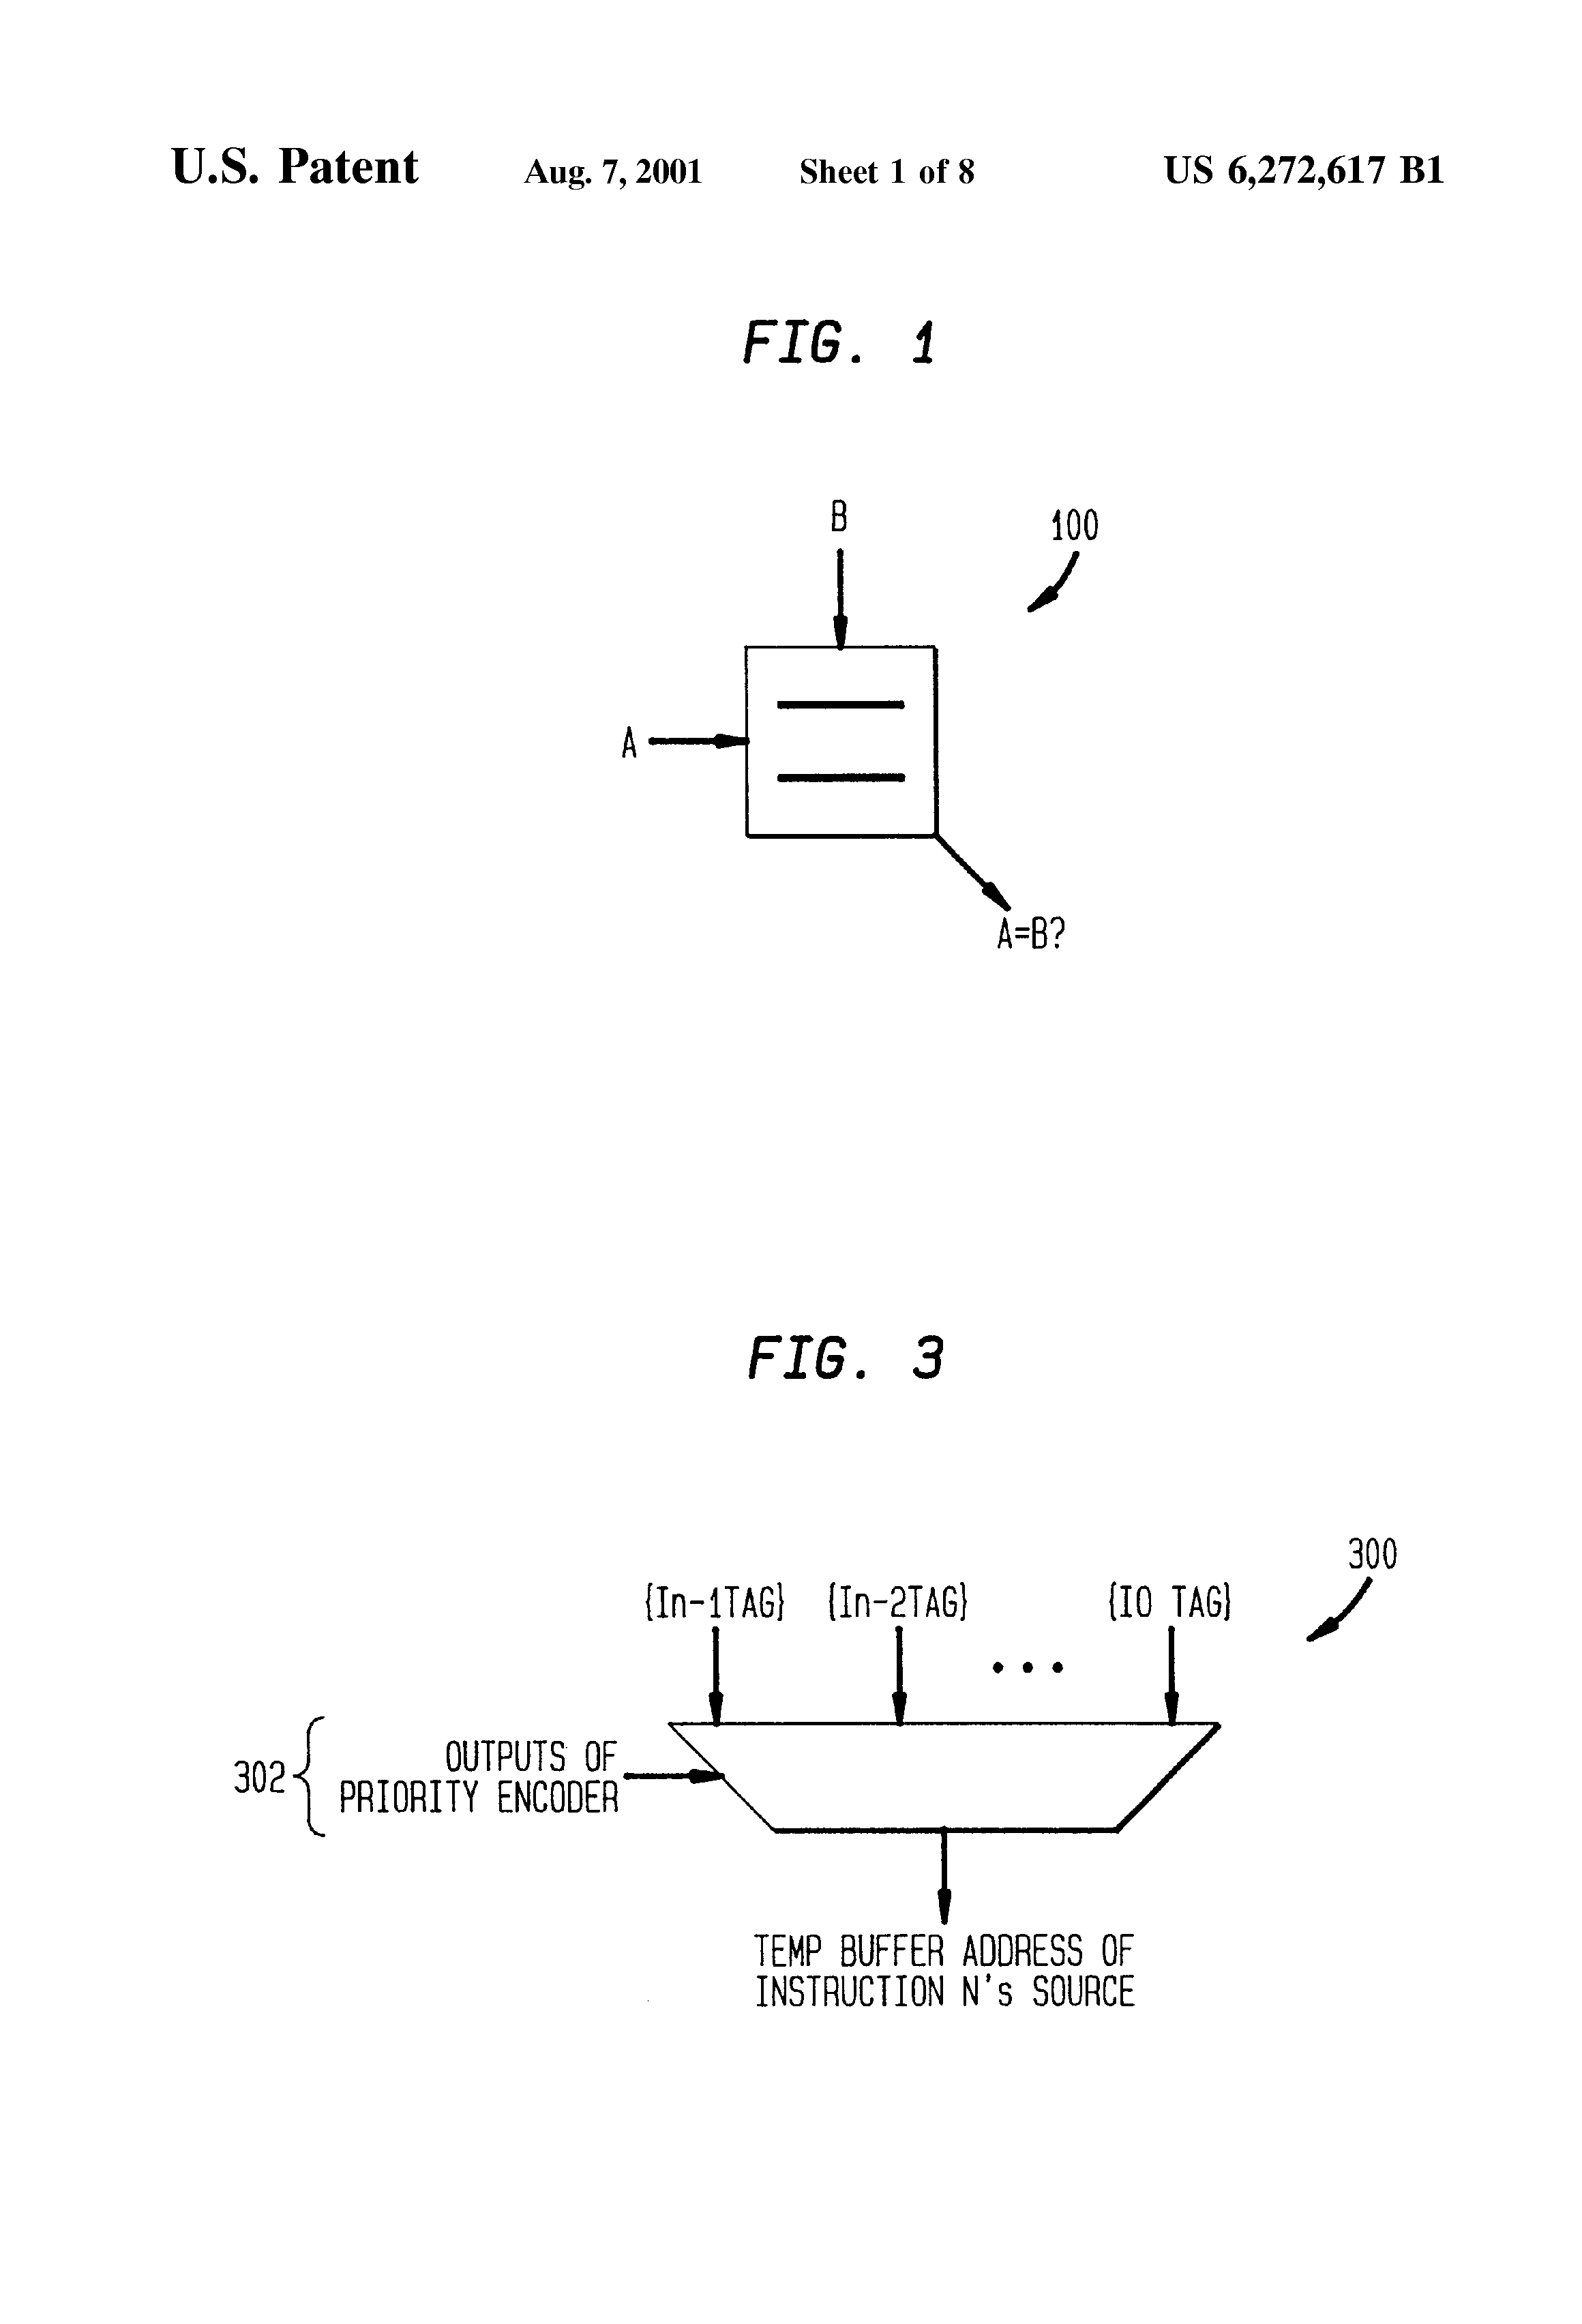 Us 6272617 B1 System And Method For Register Renaming The Lens Logic Diagram Of Priority Encoder Previous Next